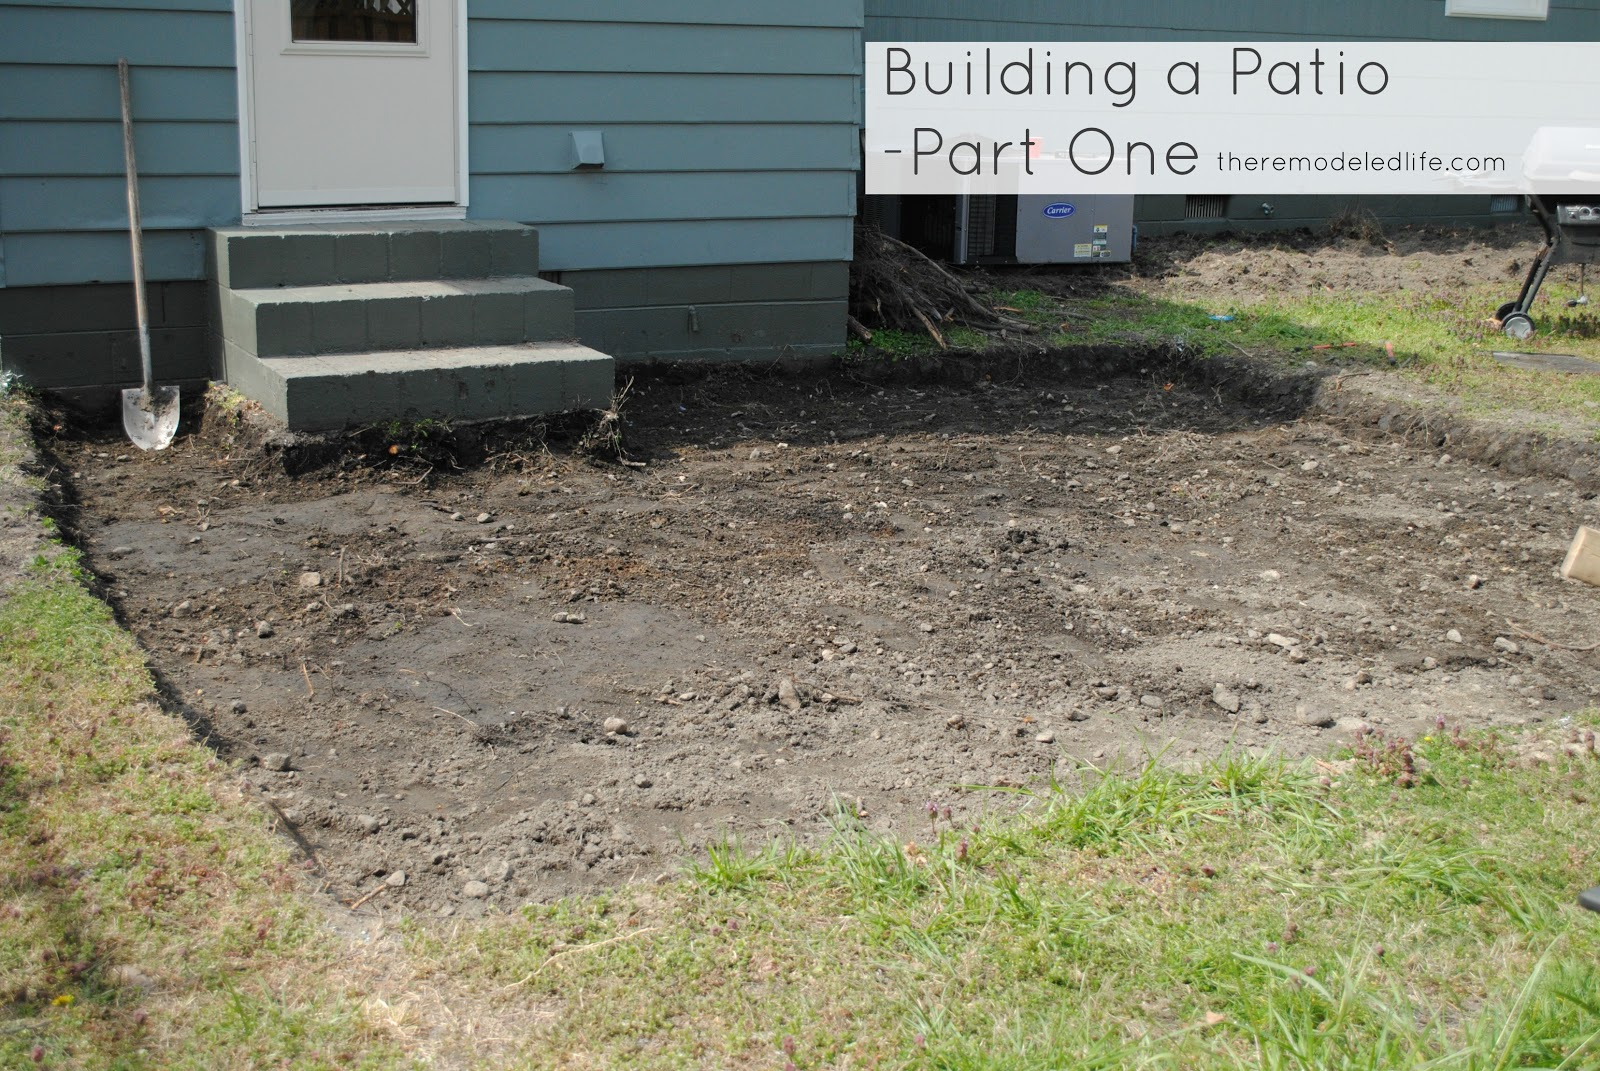 The Remodeled Life: Building A Patio